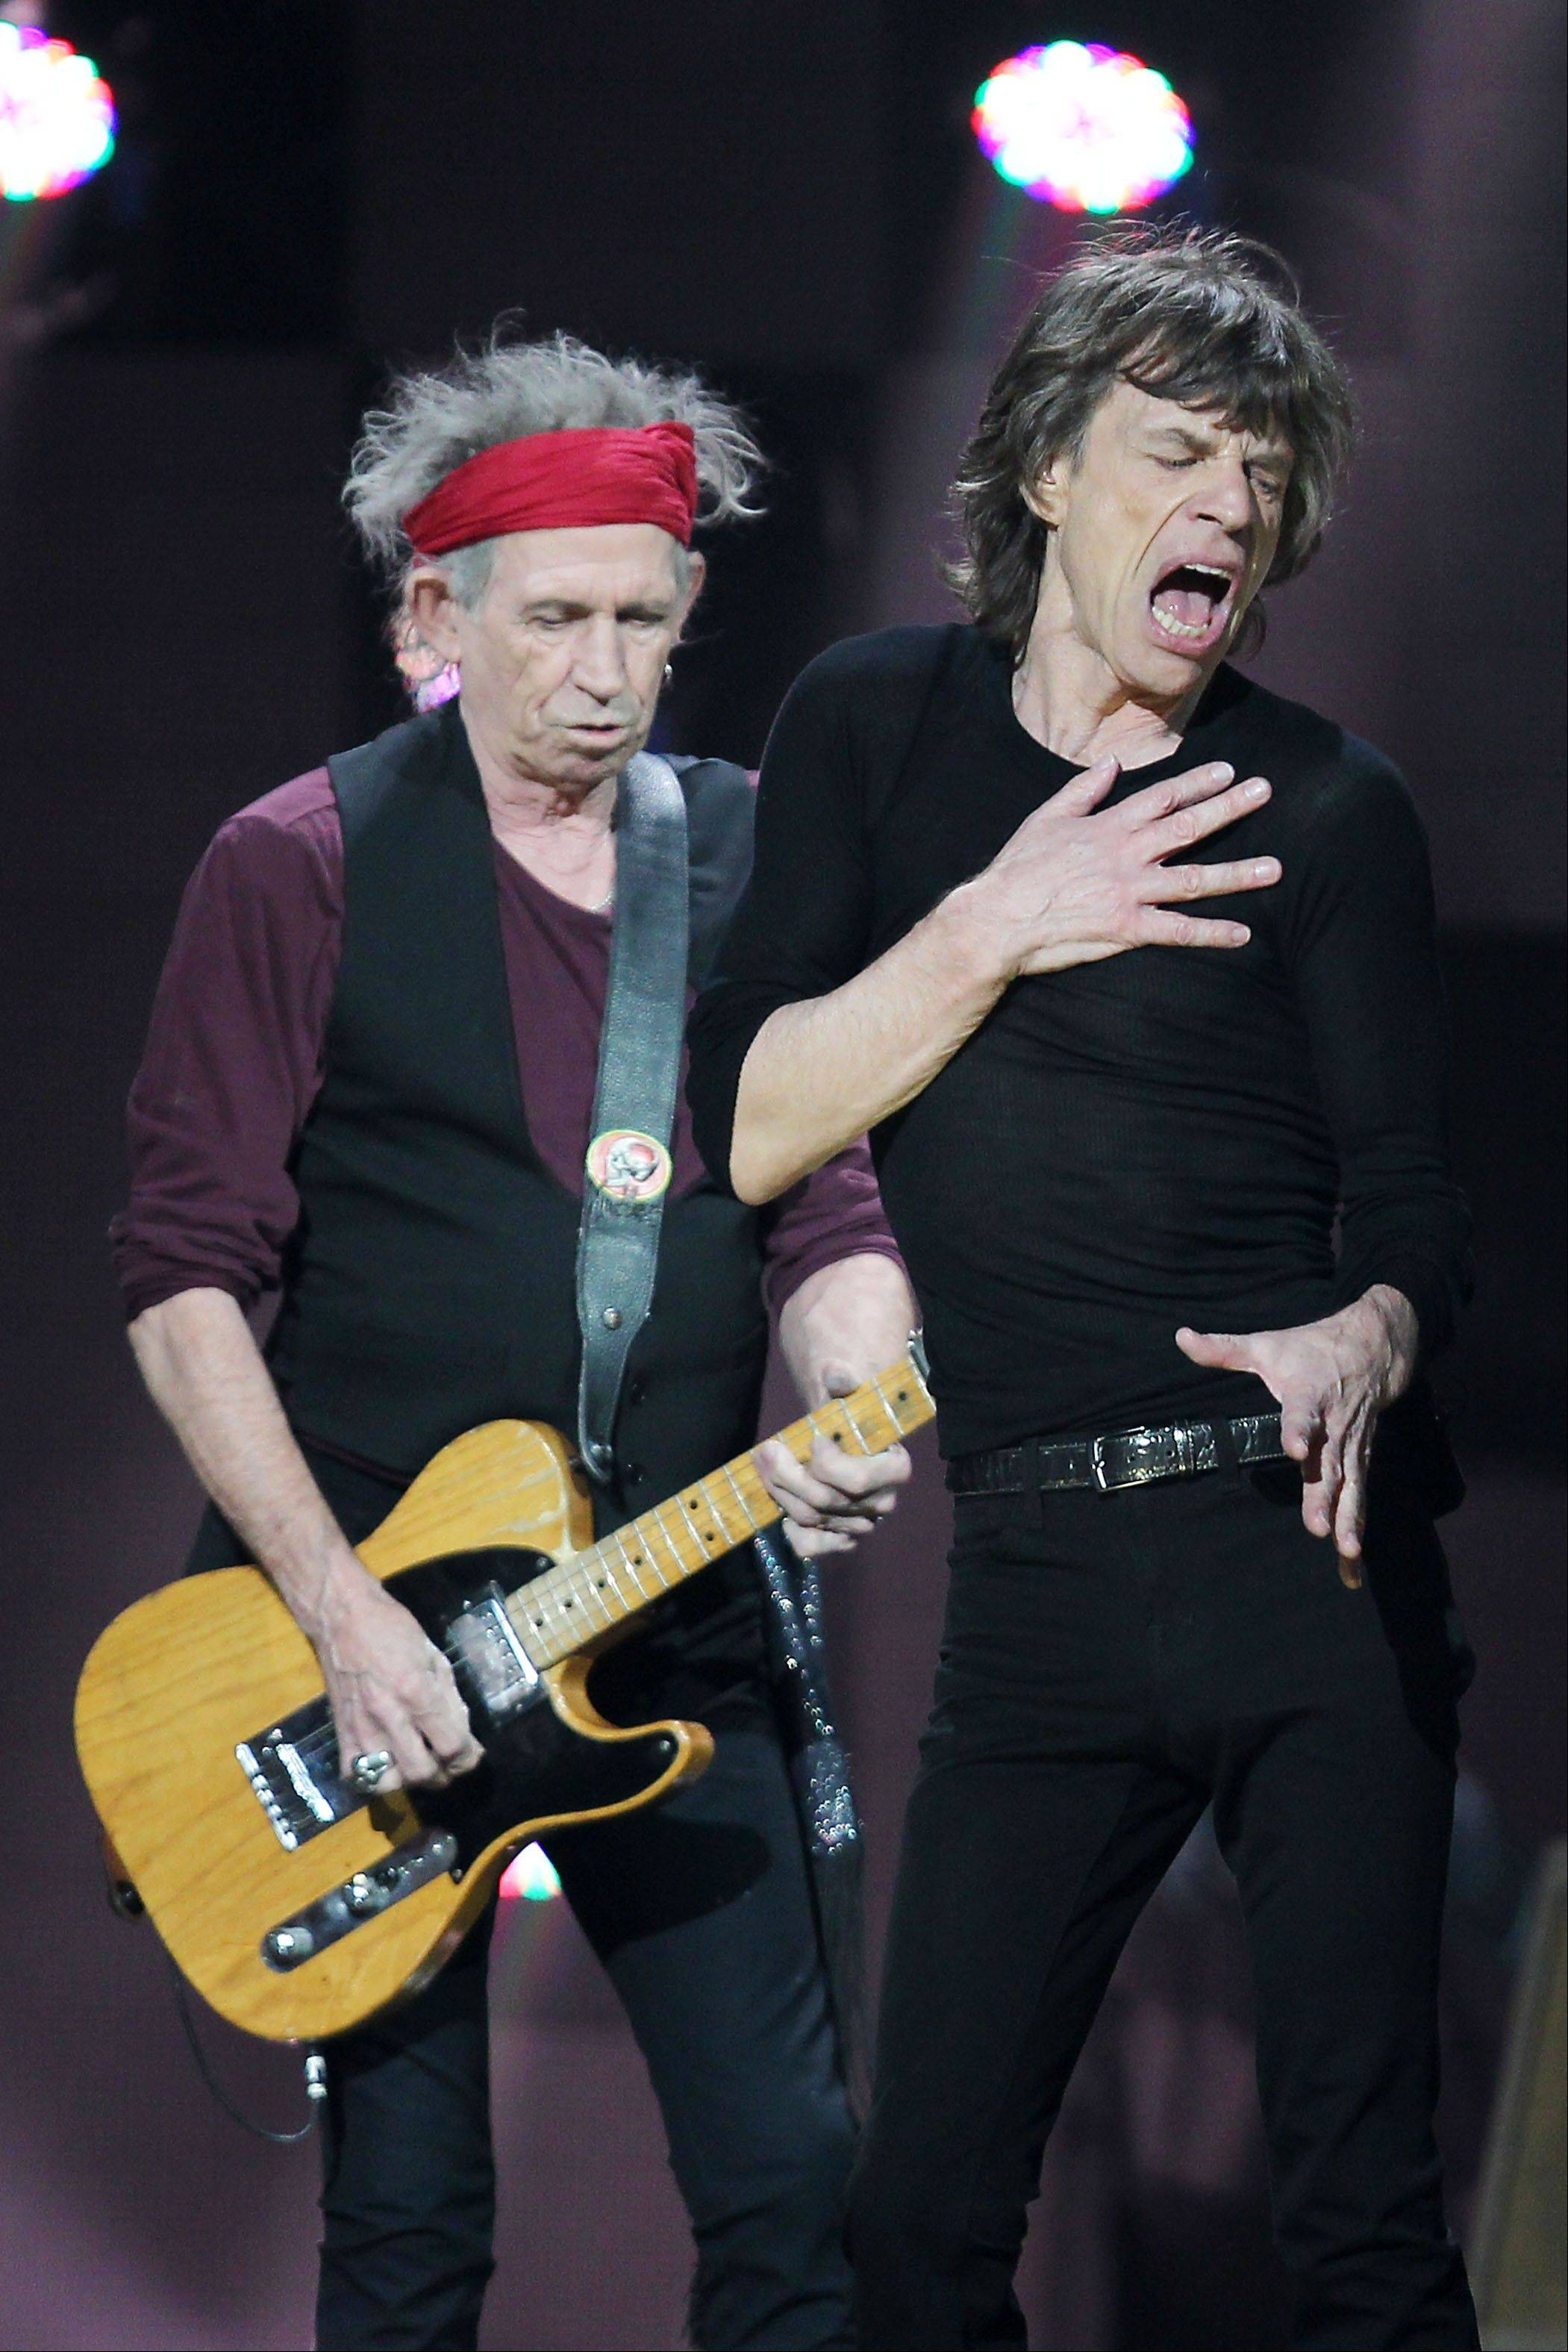 Keith Richards, left, and Mick Jagger of The Rolling Stones performs Wednesday at the 12-12-12 The Concert for Sandy Relief at Madison Square Garden in New York.